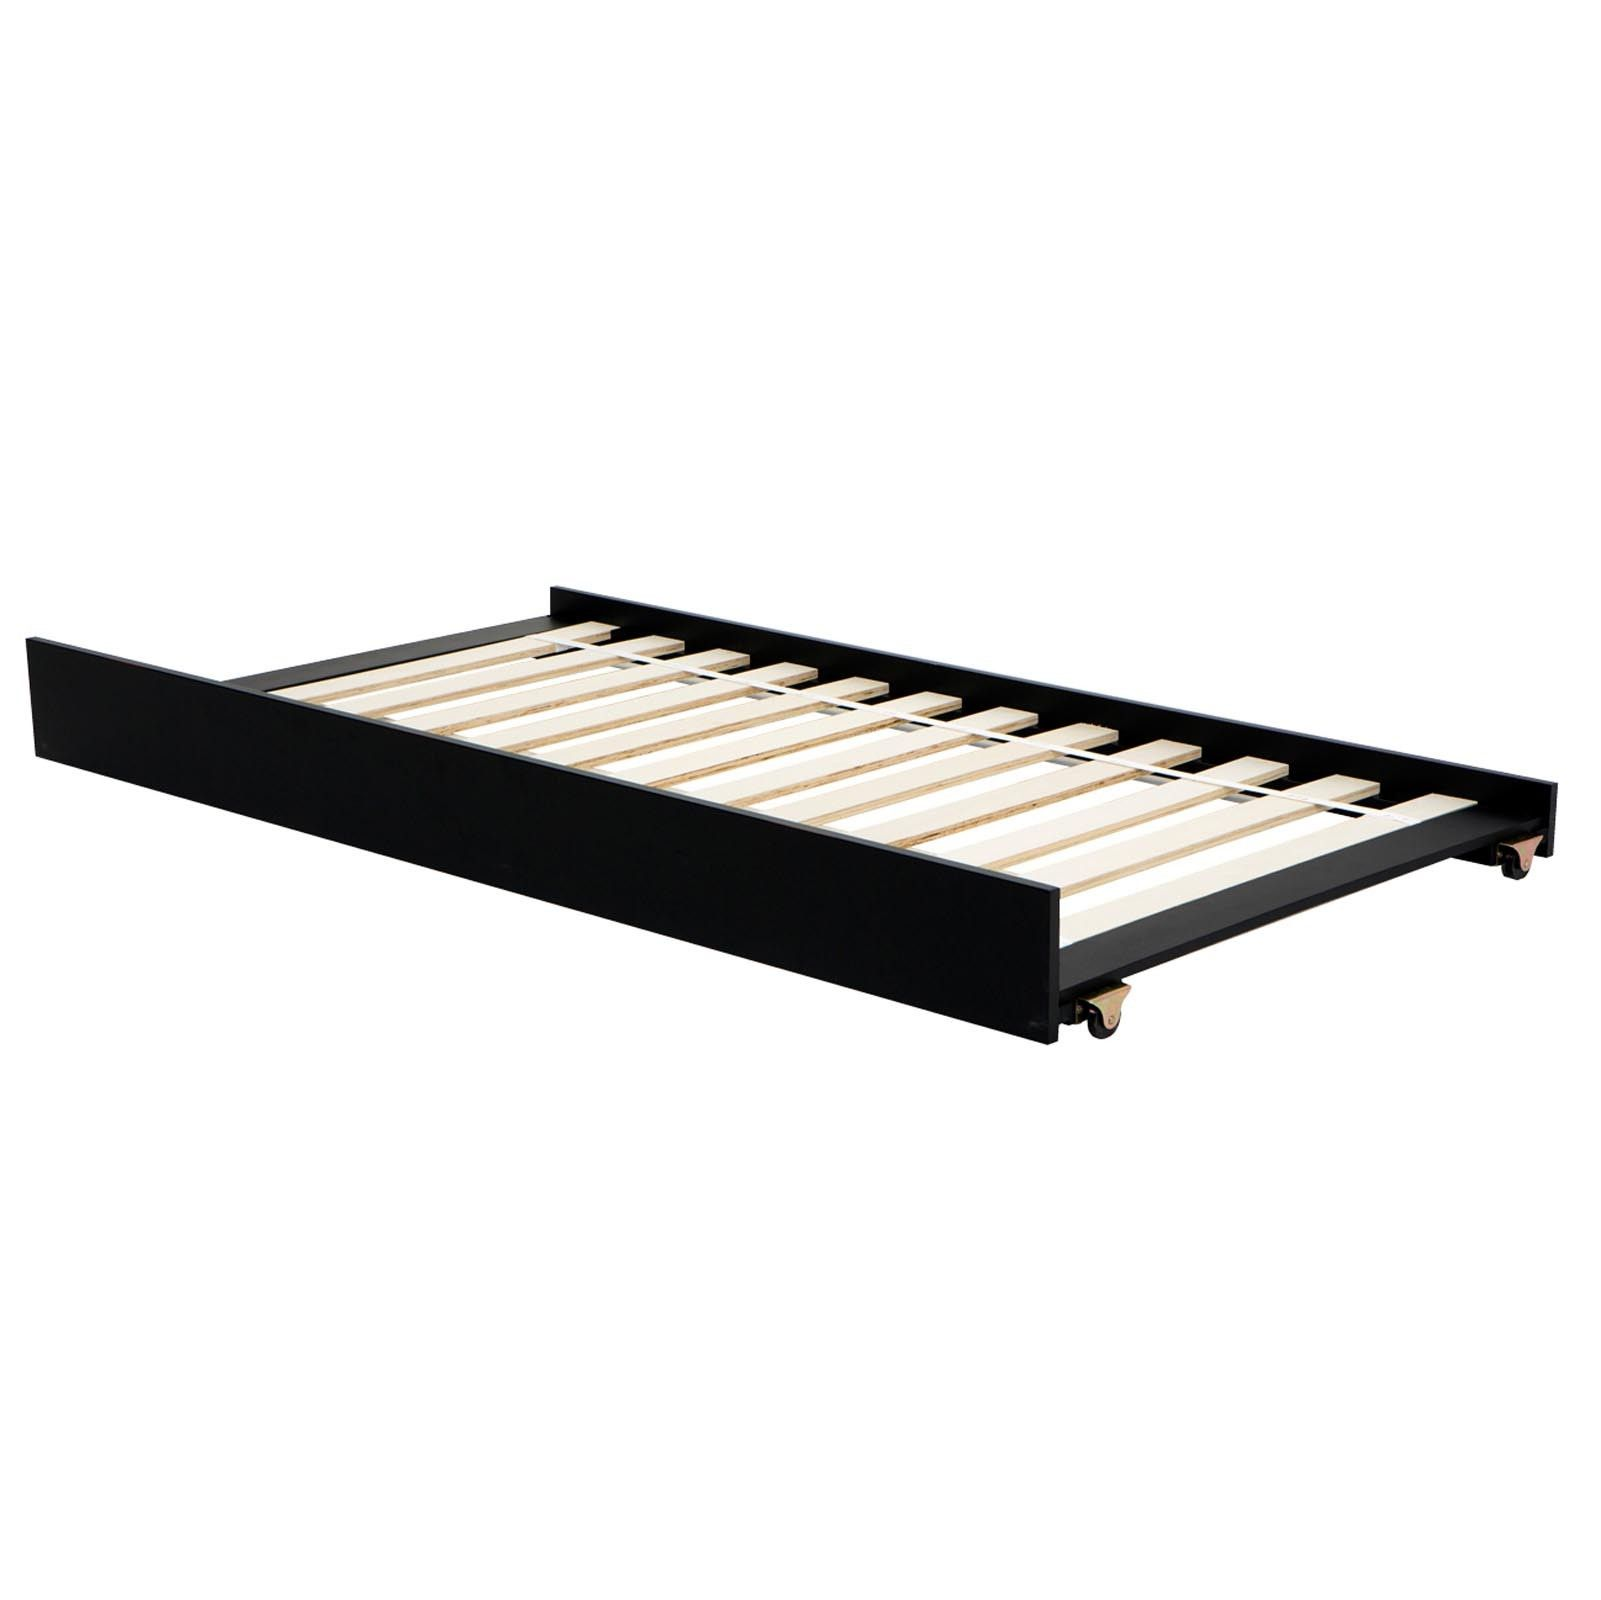 Black Trundle Twin Size Bed (seamless photo) - Could go under Malm ...